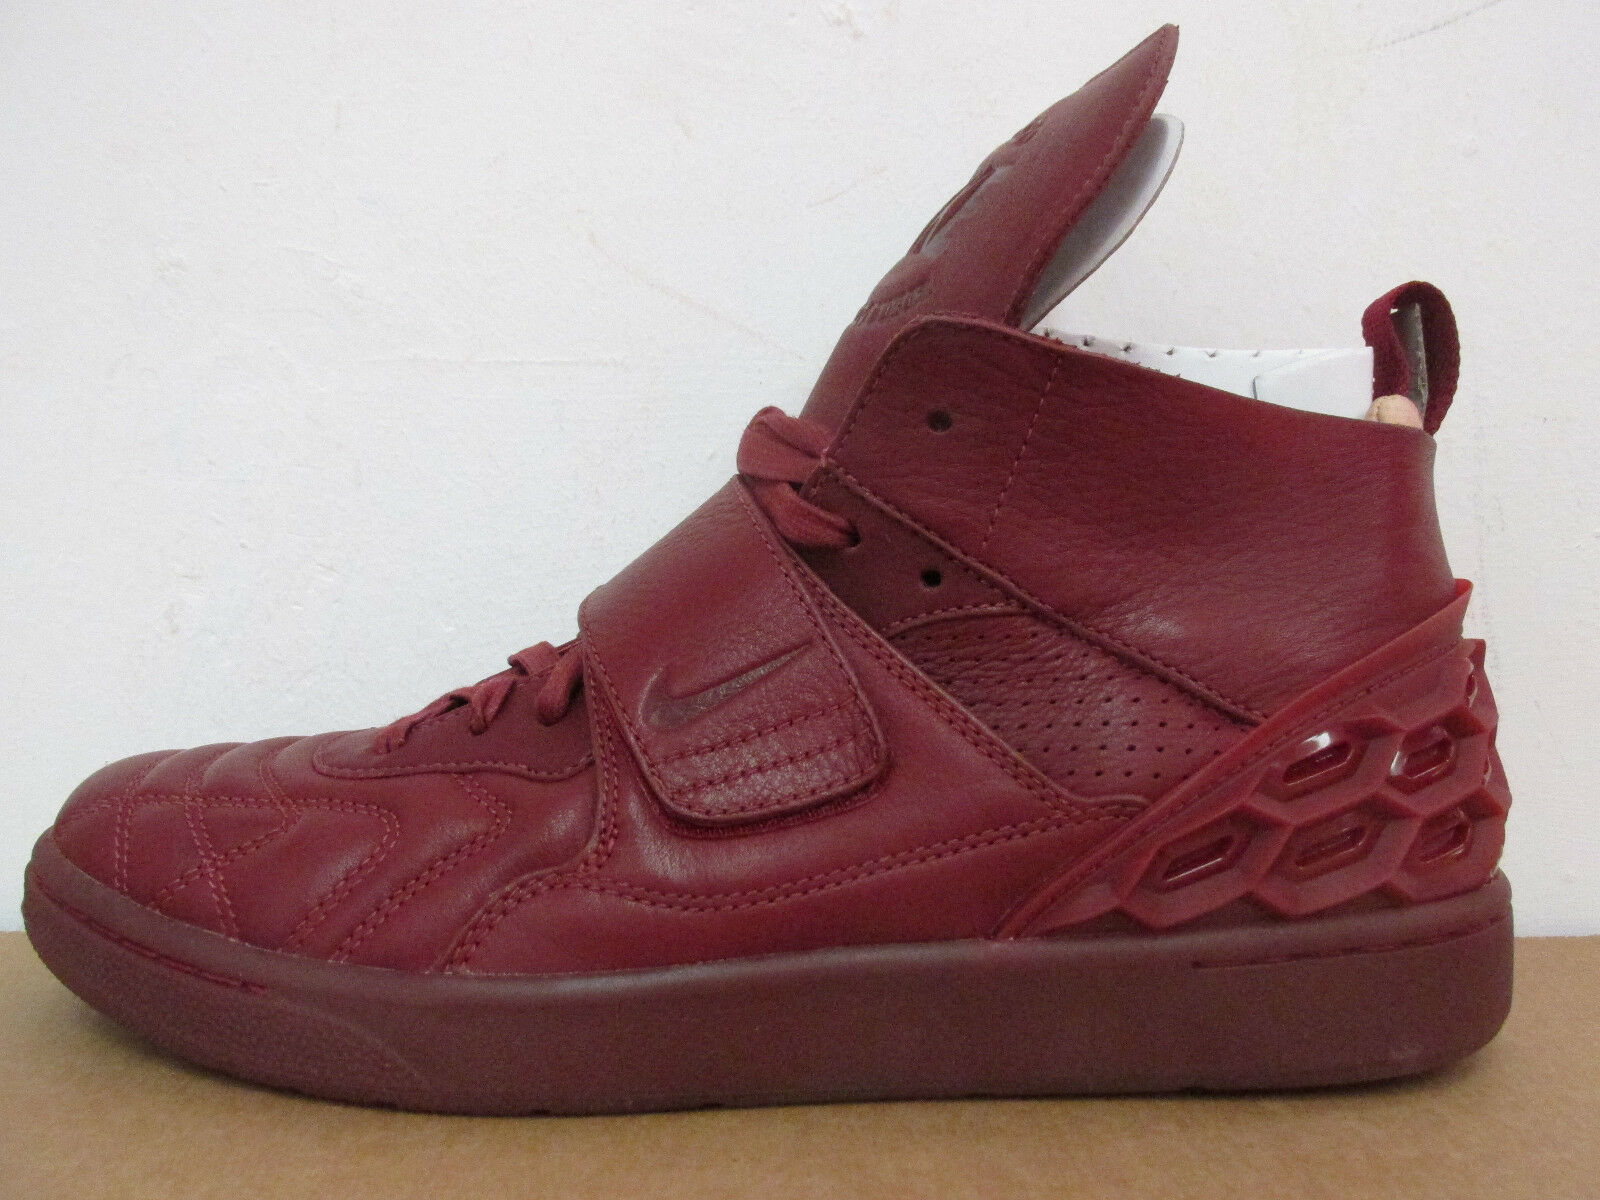 Nike Lab Tiempo Vatta  Uomo Hi Sneakers Top Trainers 840482 600 Sneakers Hi Schuhes CLEARANCE 682135